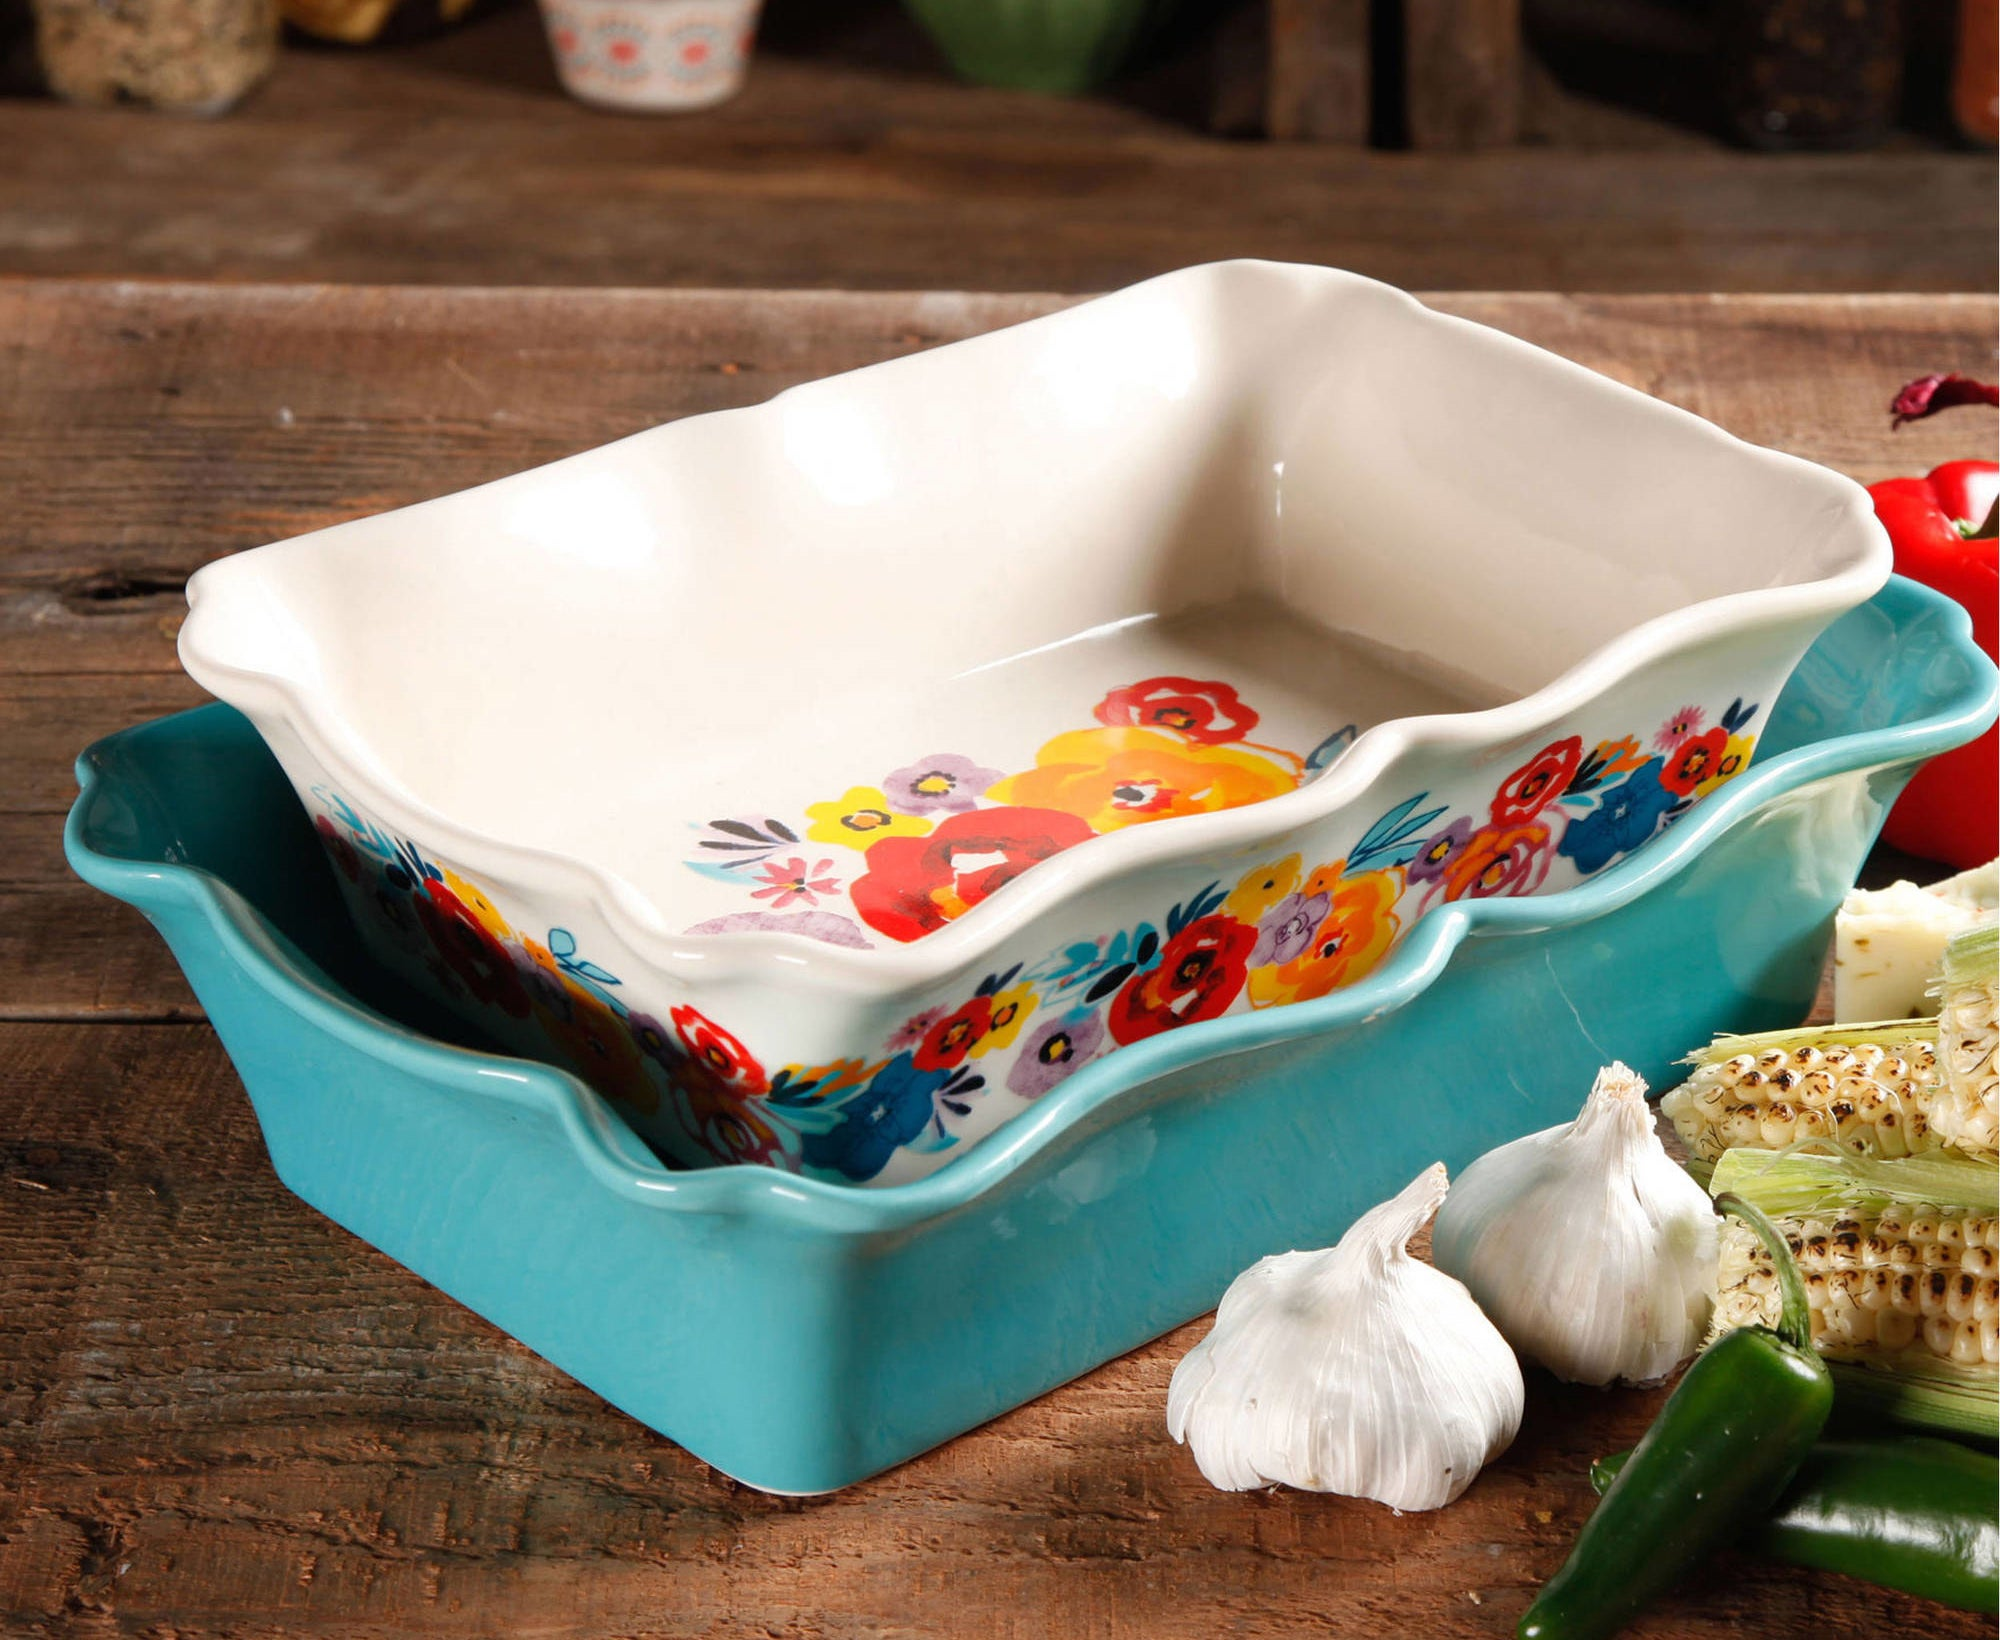 The bakeware set — one is turquoise and the other is white and floral